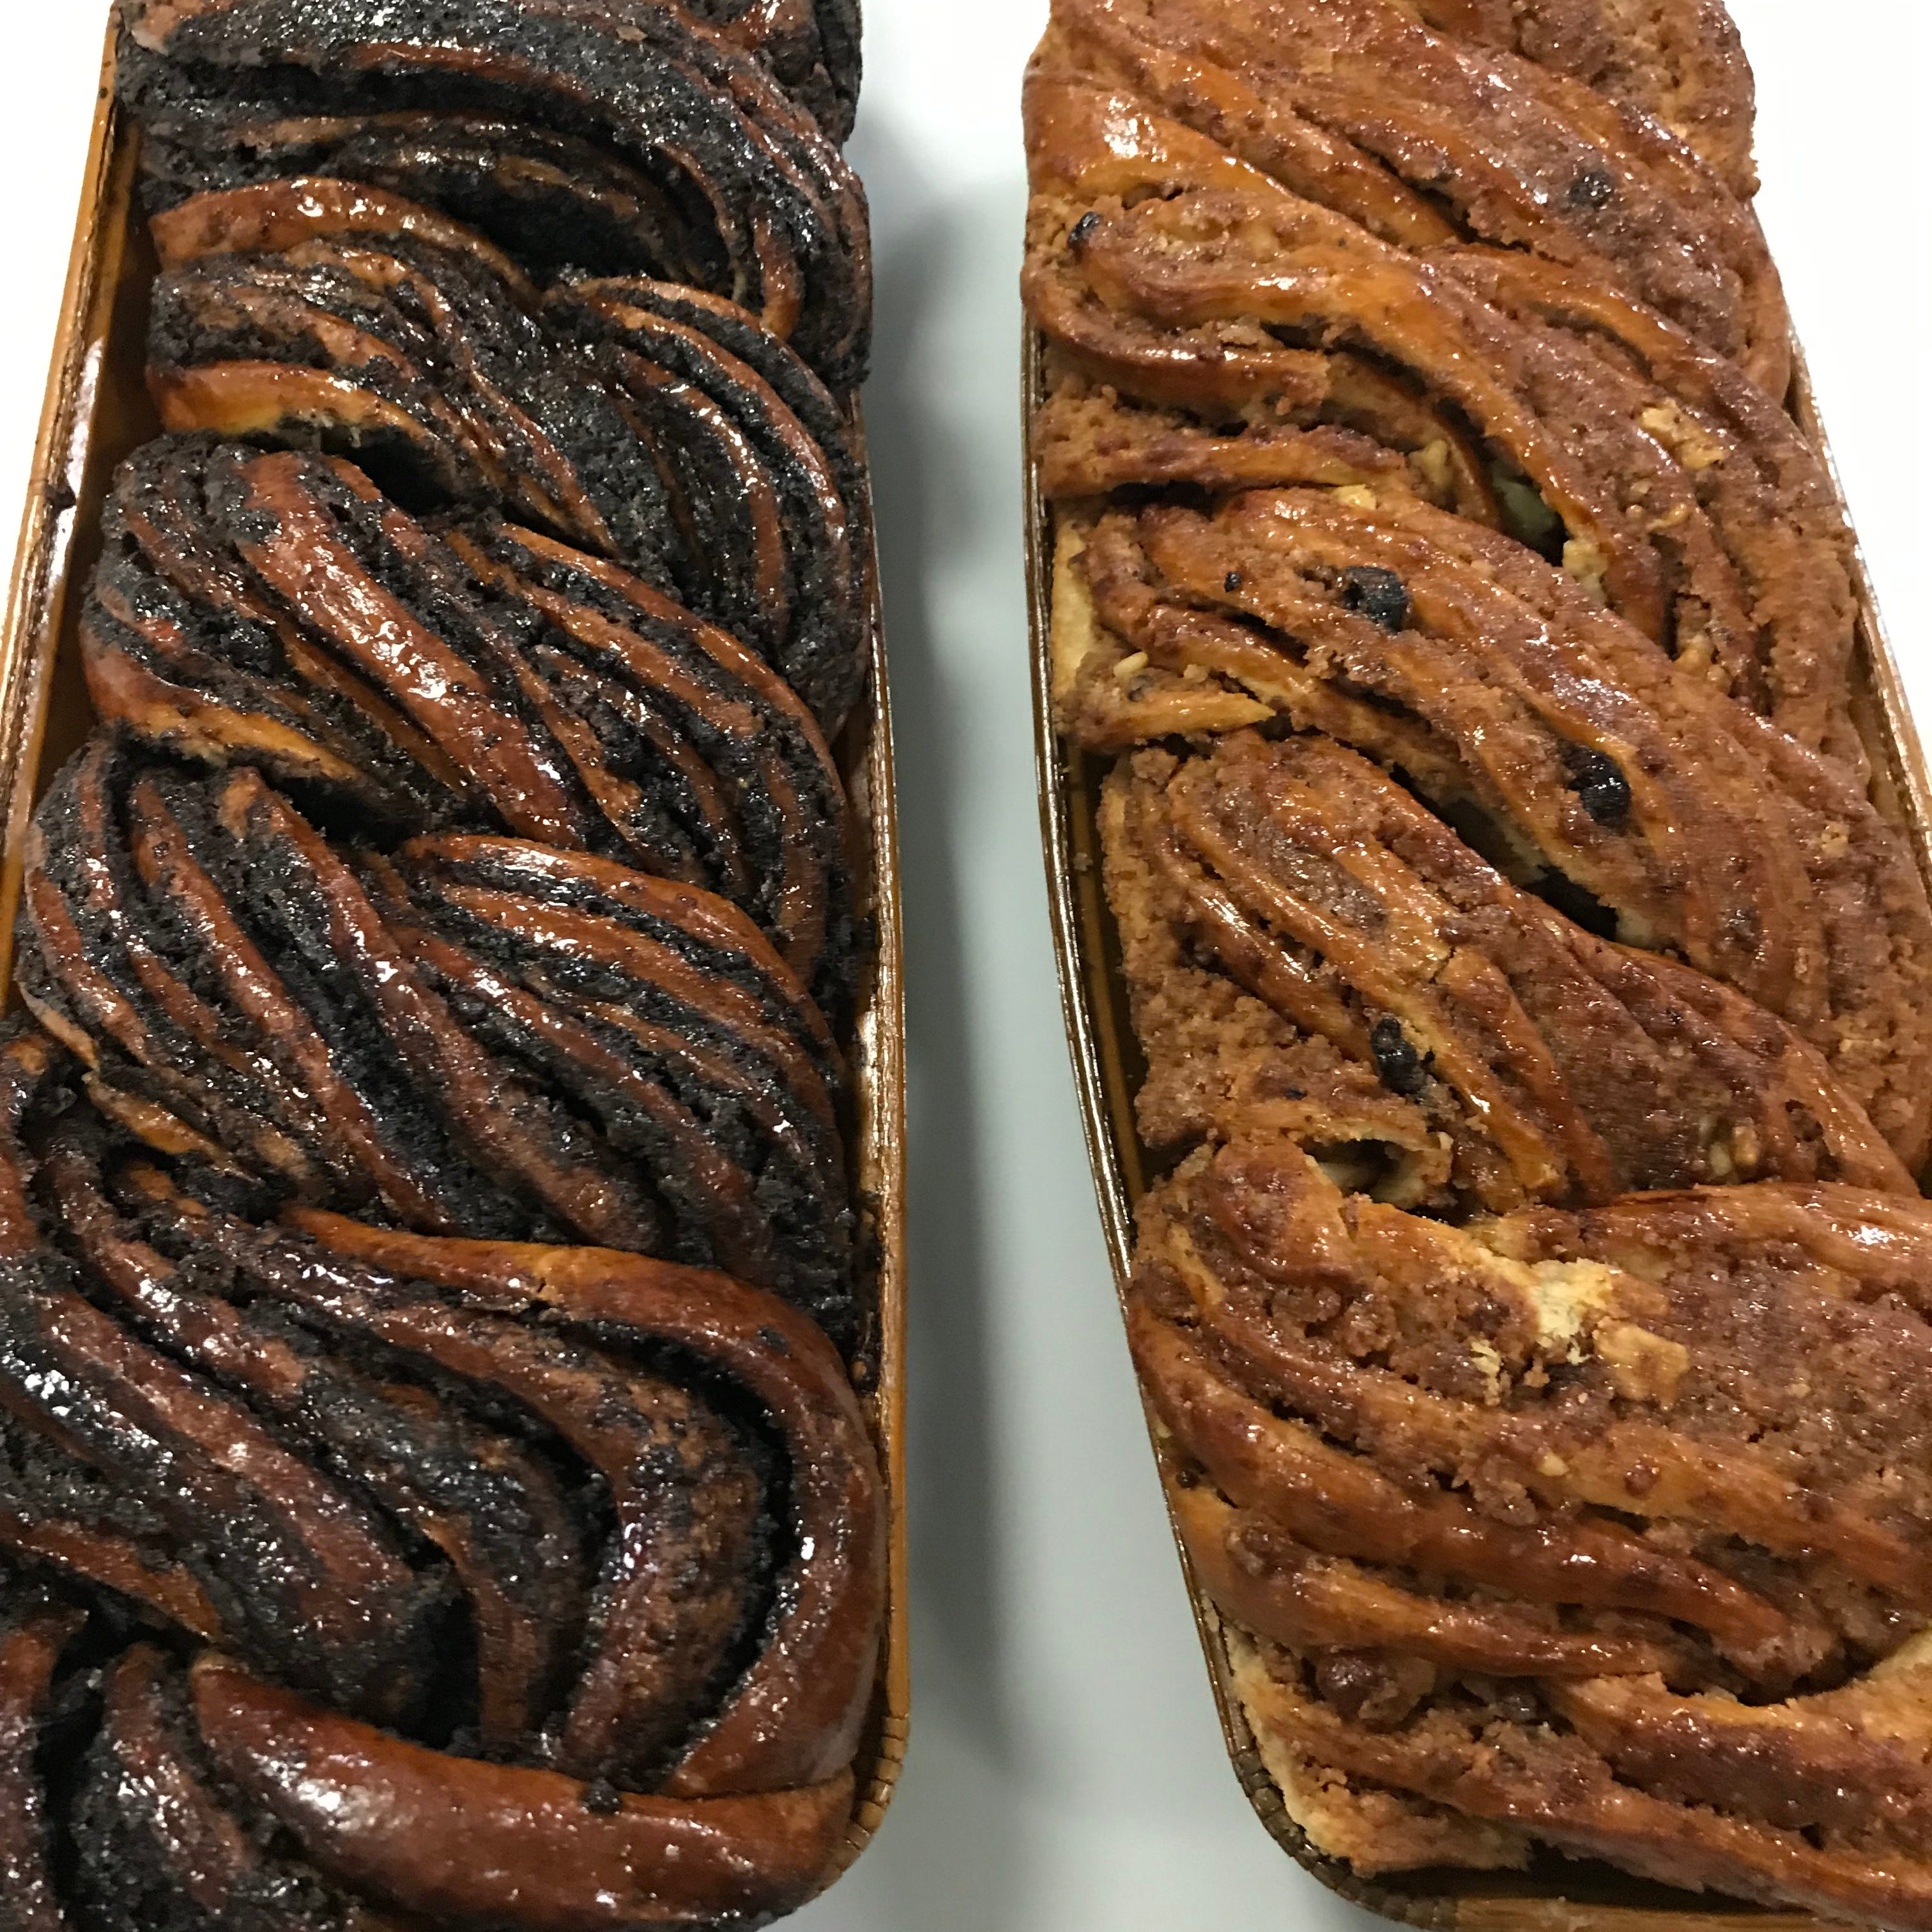 Chocolate or cinnamon? After Jerry Seinfeld's babka purchase, Scarsdale bakery sells out